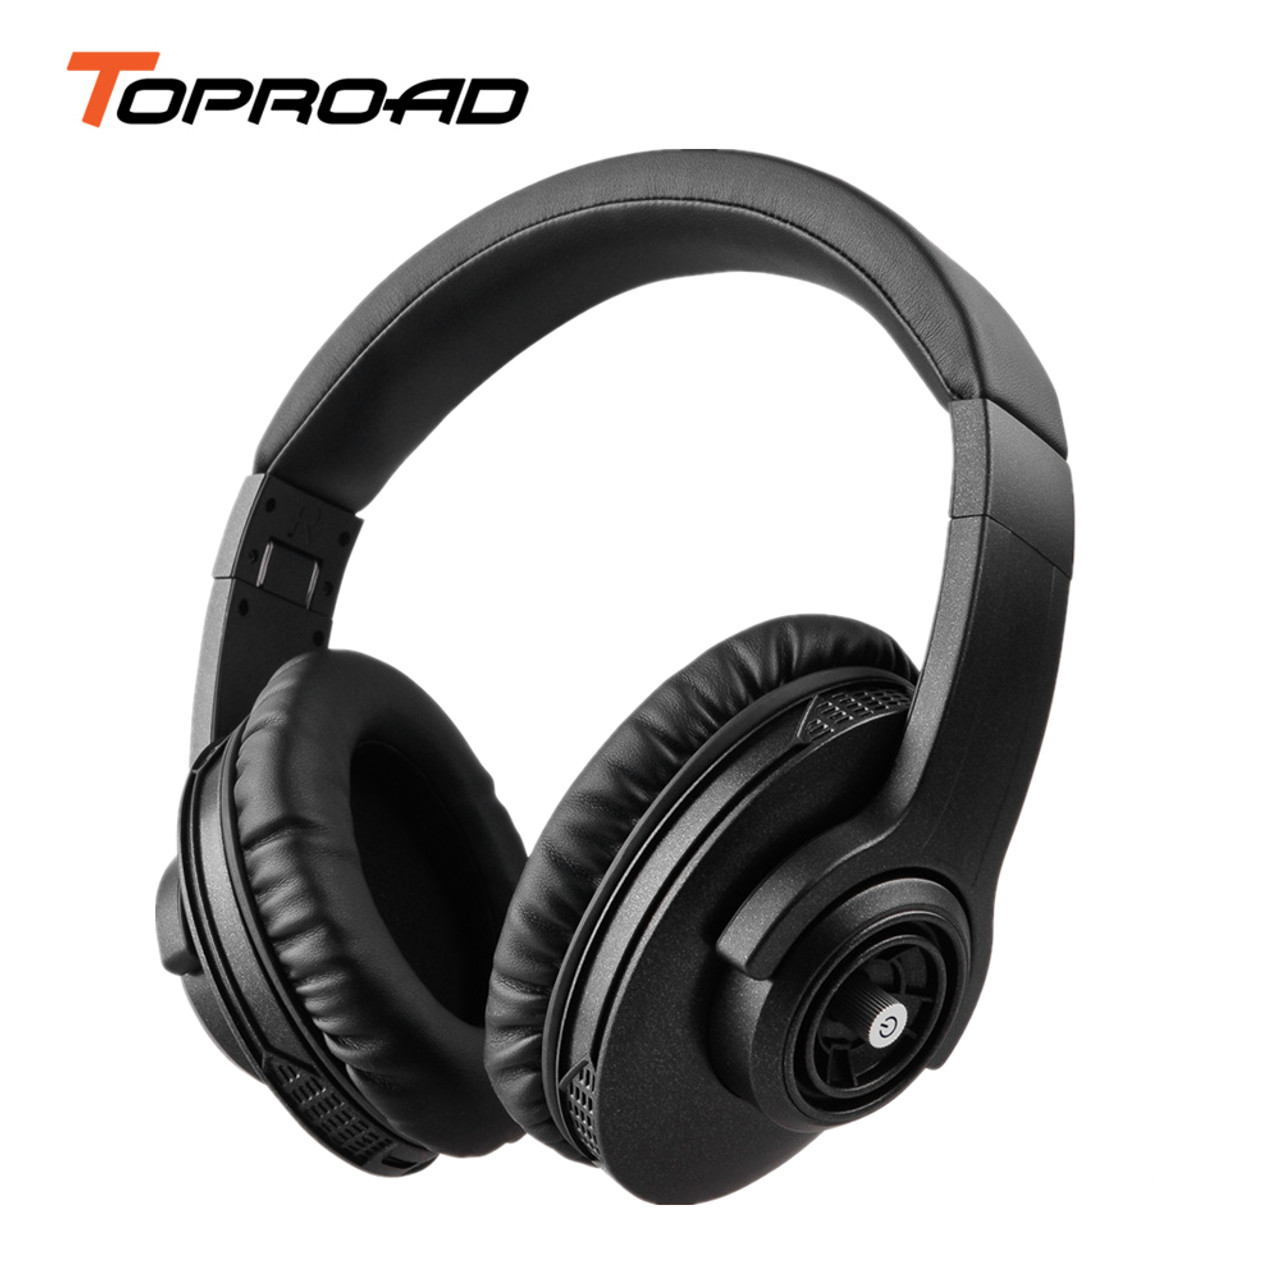 40e87204844 TOPROAD Portable Foldable Bluetooth Headphone Noise Cancelling Stereo  Wireless Headset Support Voice dial Handsfree for Phone ...